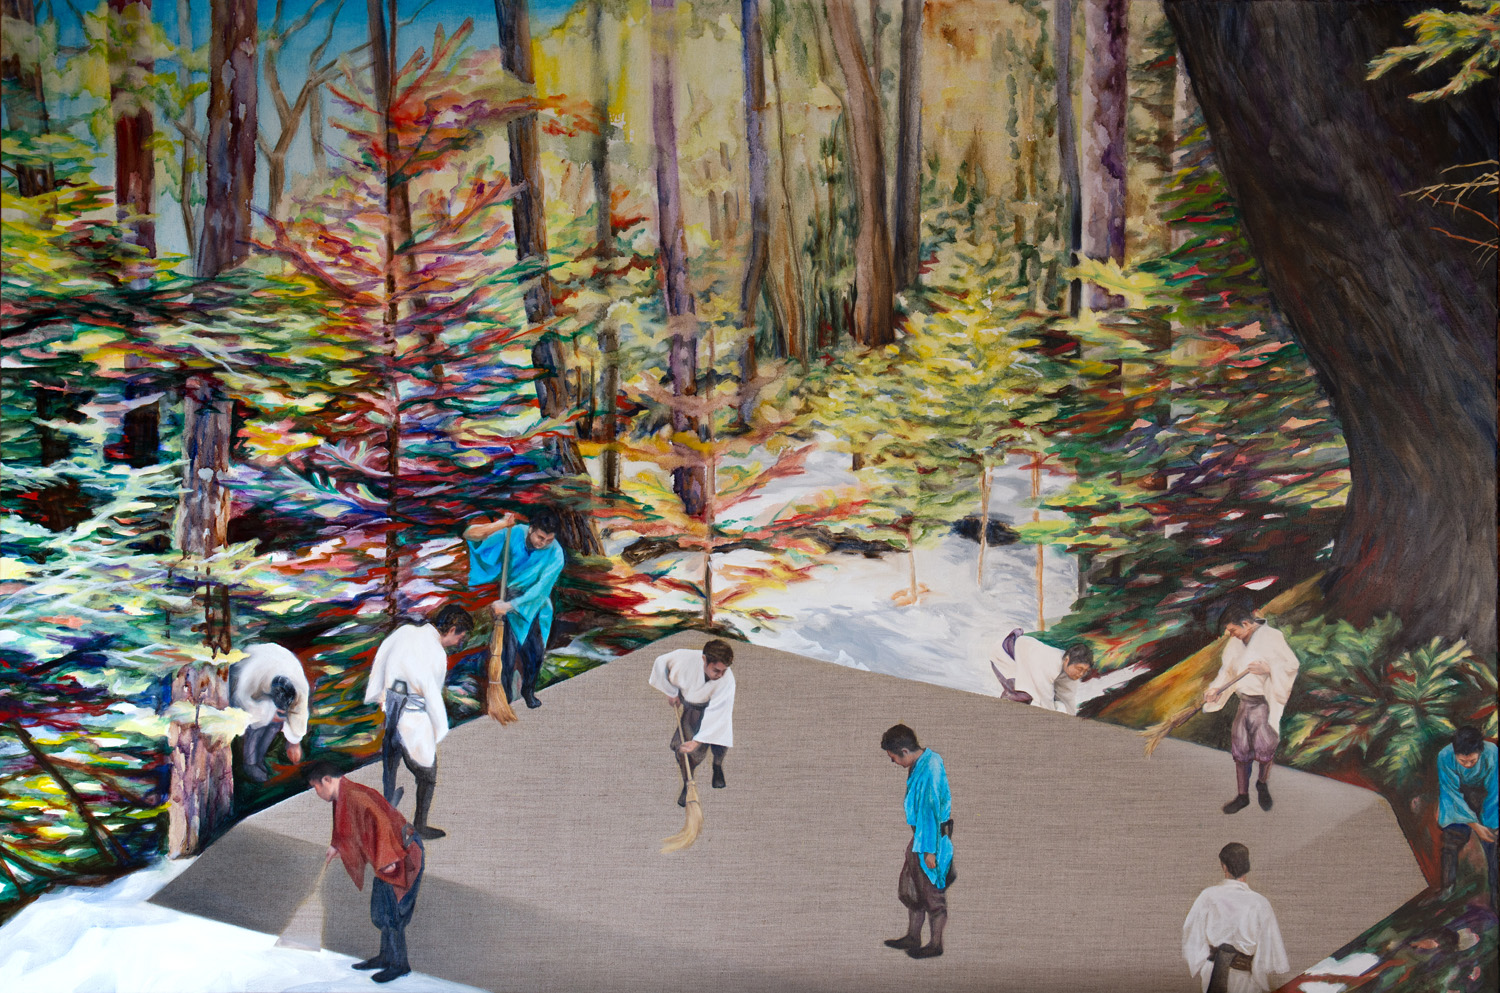 Kevin Chin, Tend the Ground, 2014, oil on linen, 97 x 147 cm